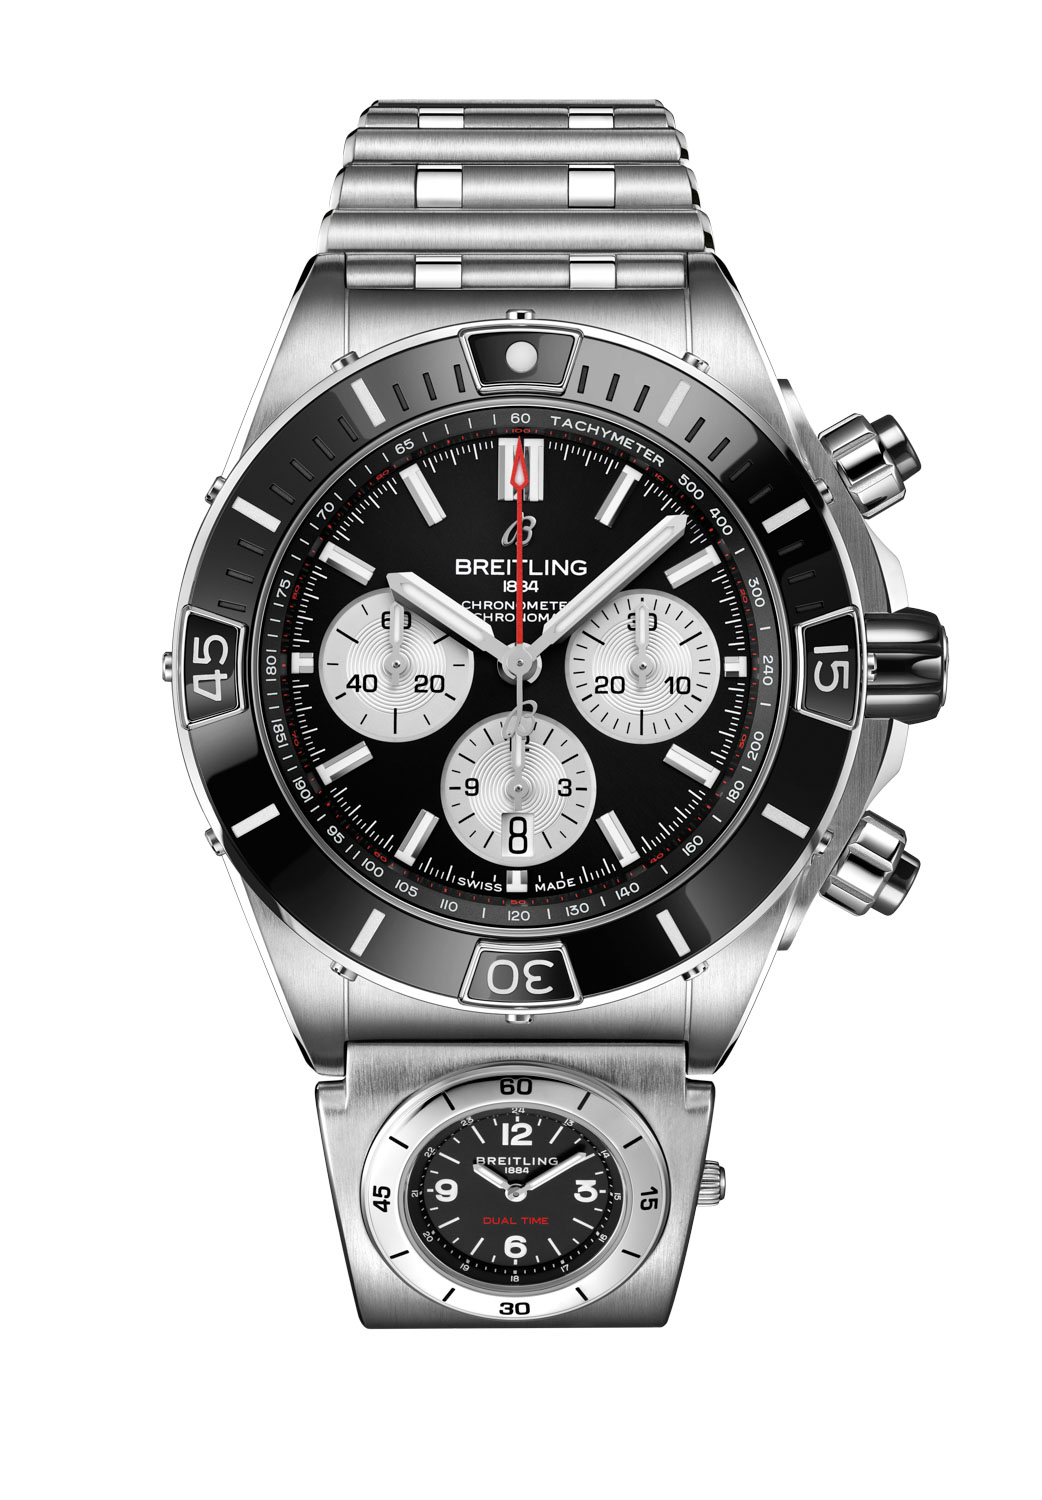 The Super Chronomat B01 44 in stainless steel fitted on a Rouleaux bracelet with UTC module and folding clasp